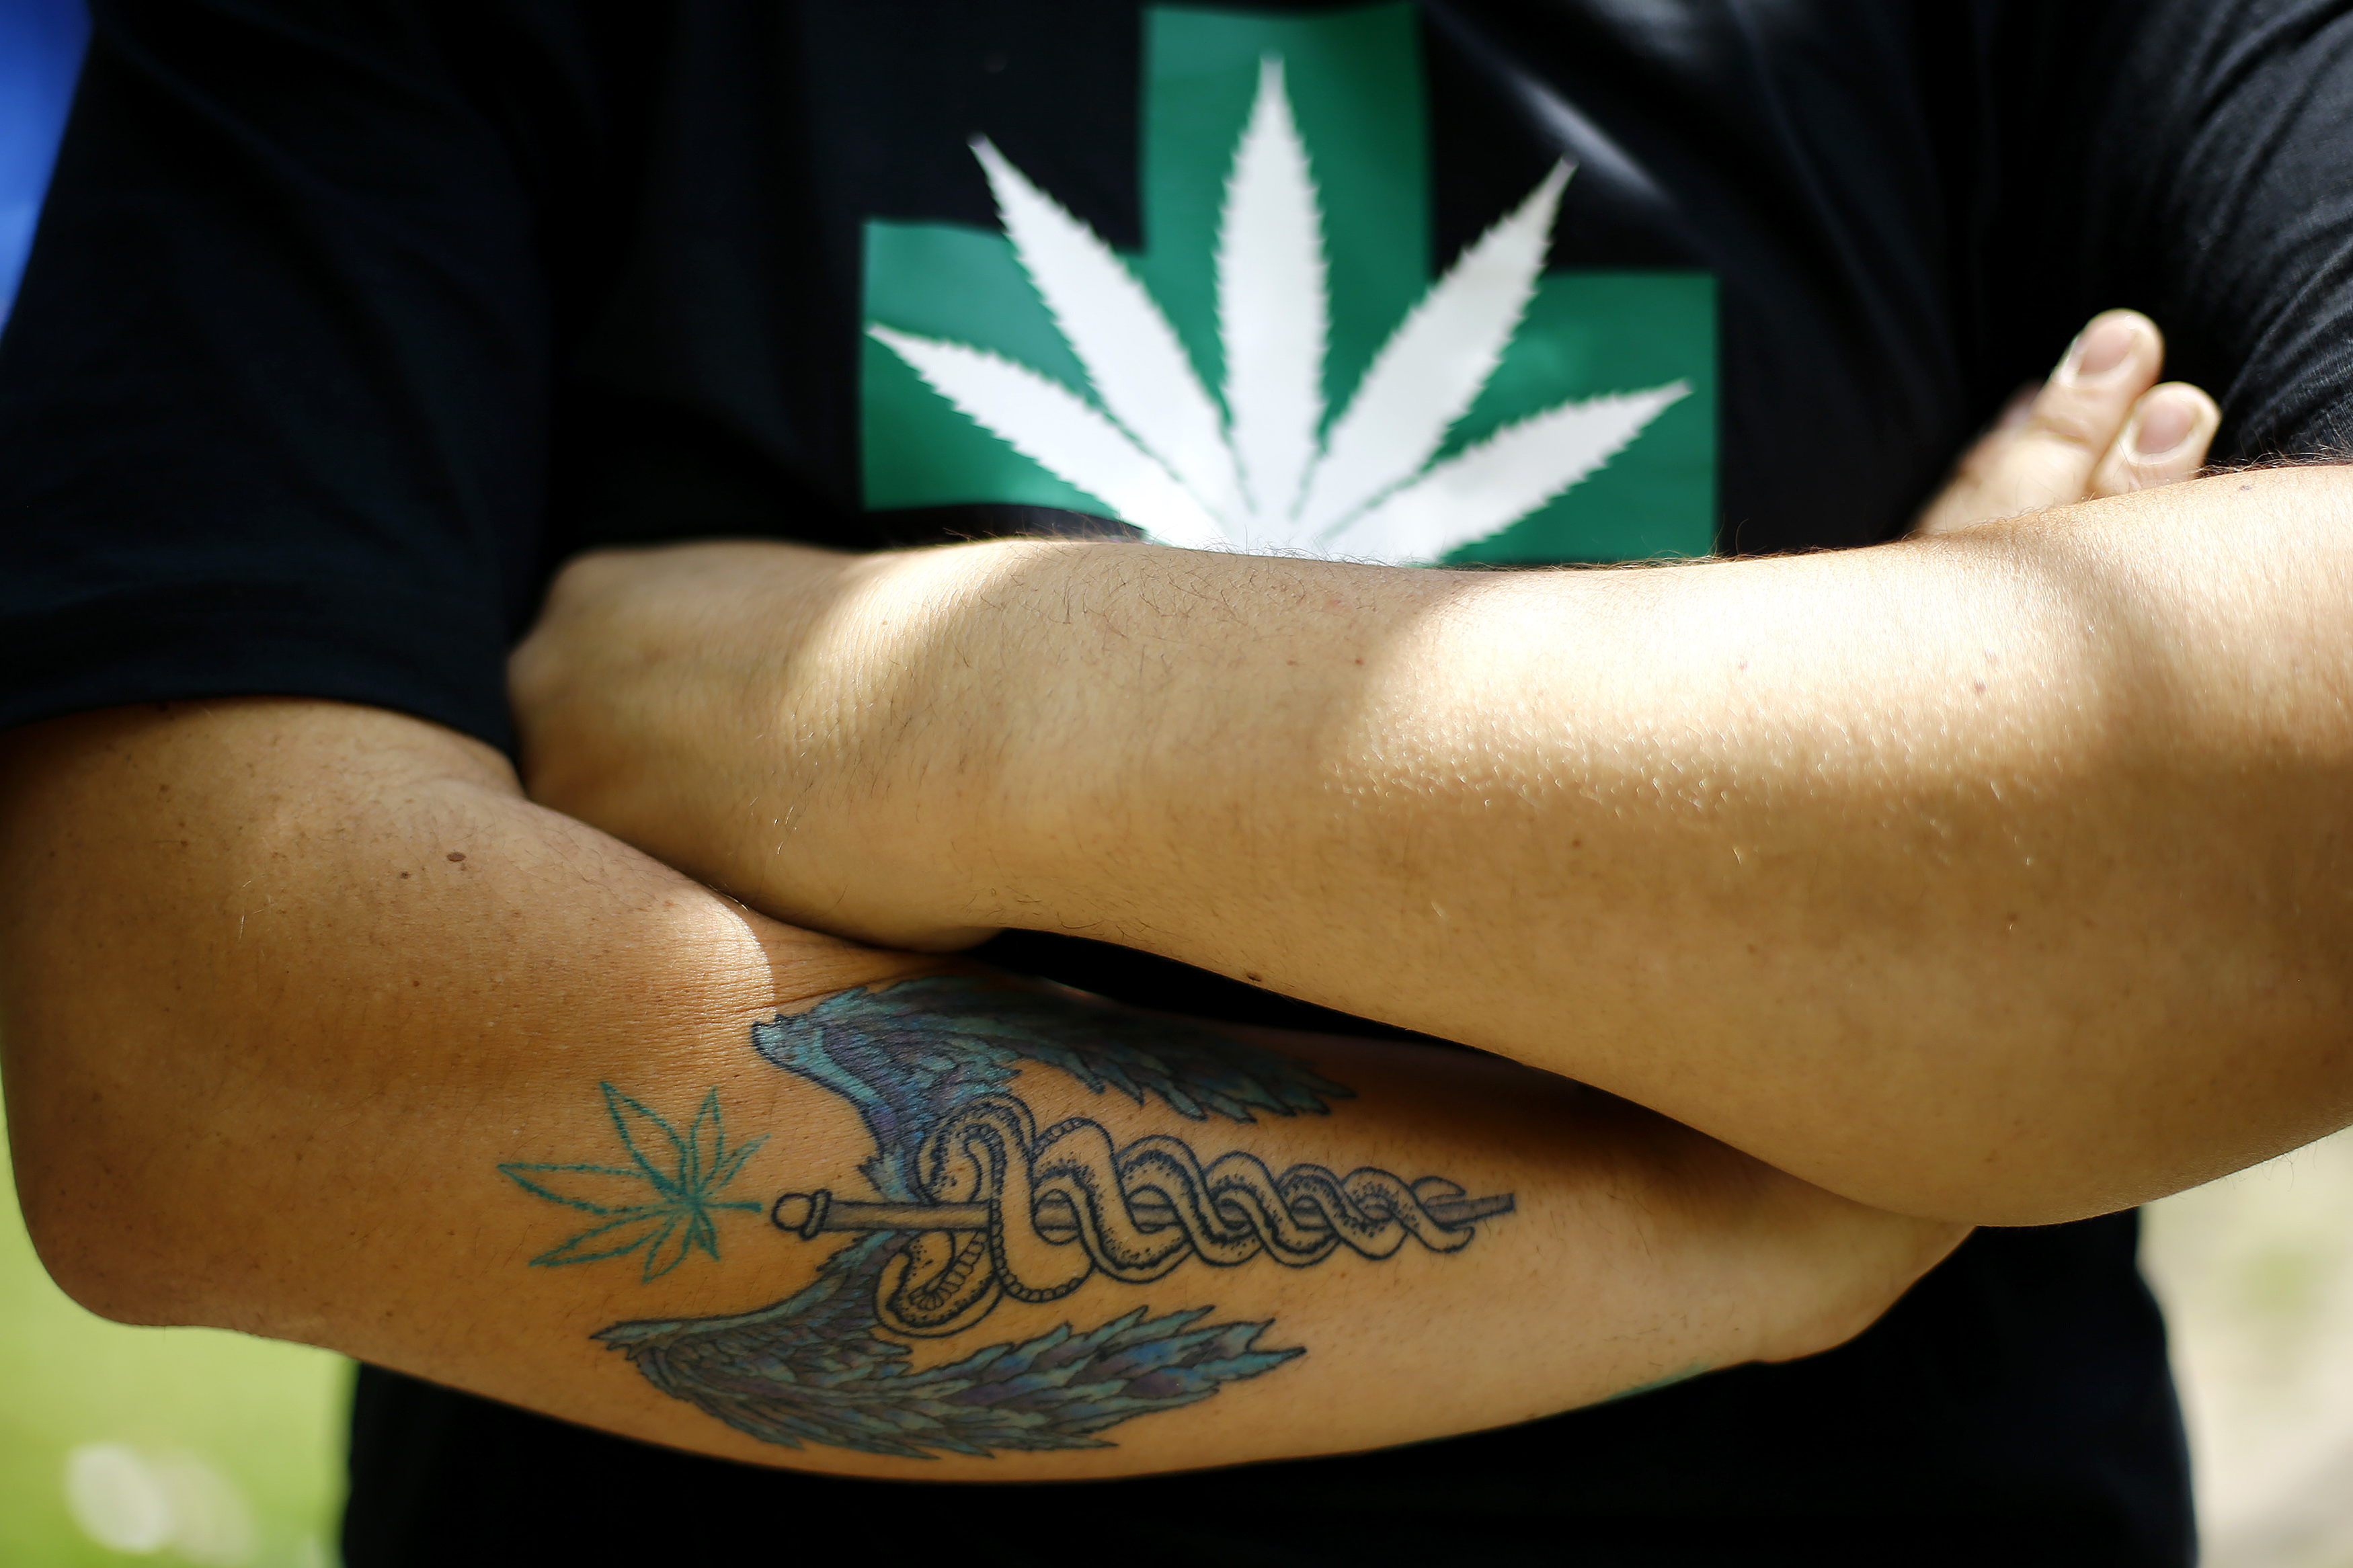 A man attends the first cultivation of cannabis authorized for medicinal purposes in Santiago